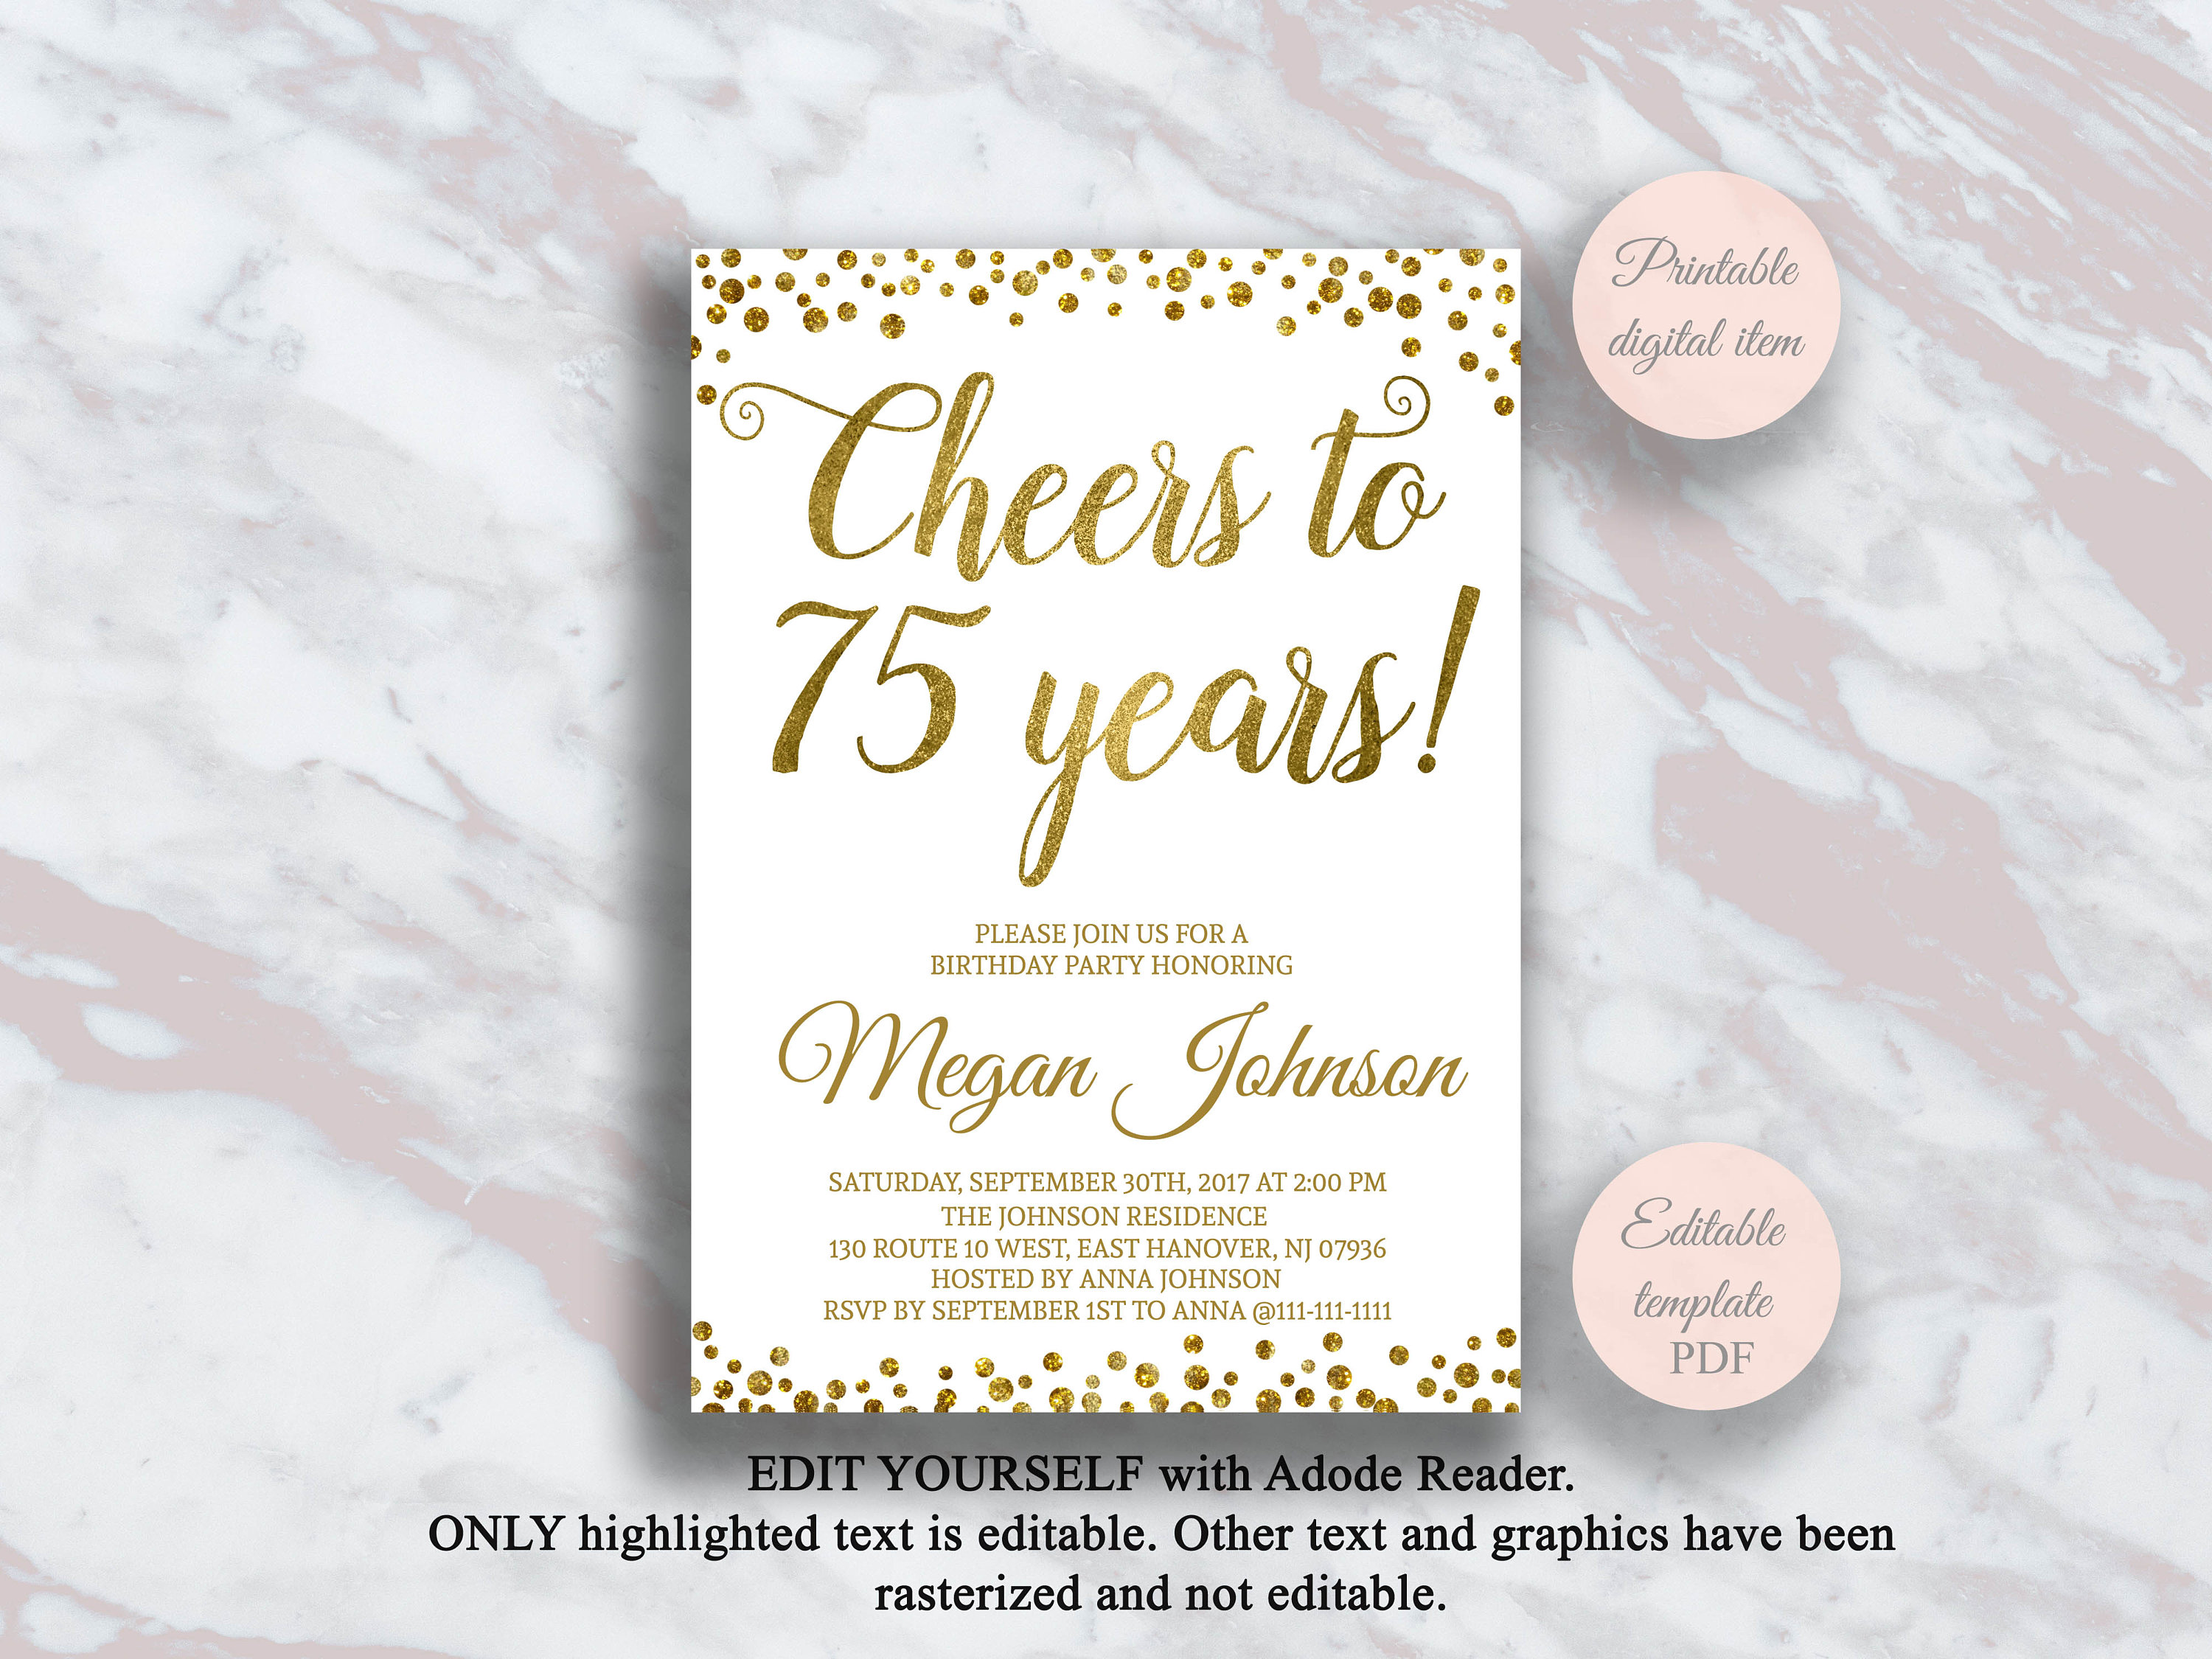 Editable 75th Birthday Invitation Cheers To 75 Years Gold